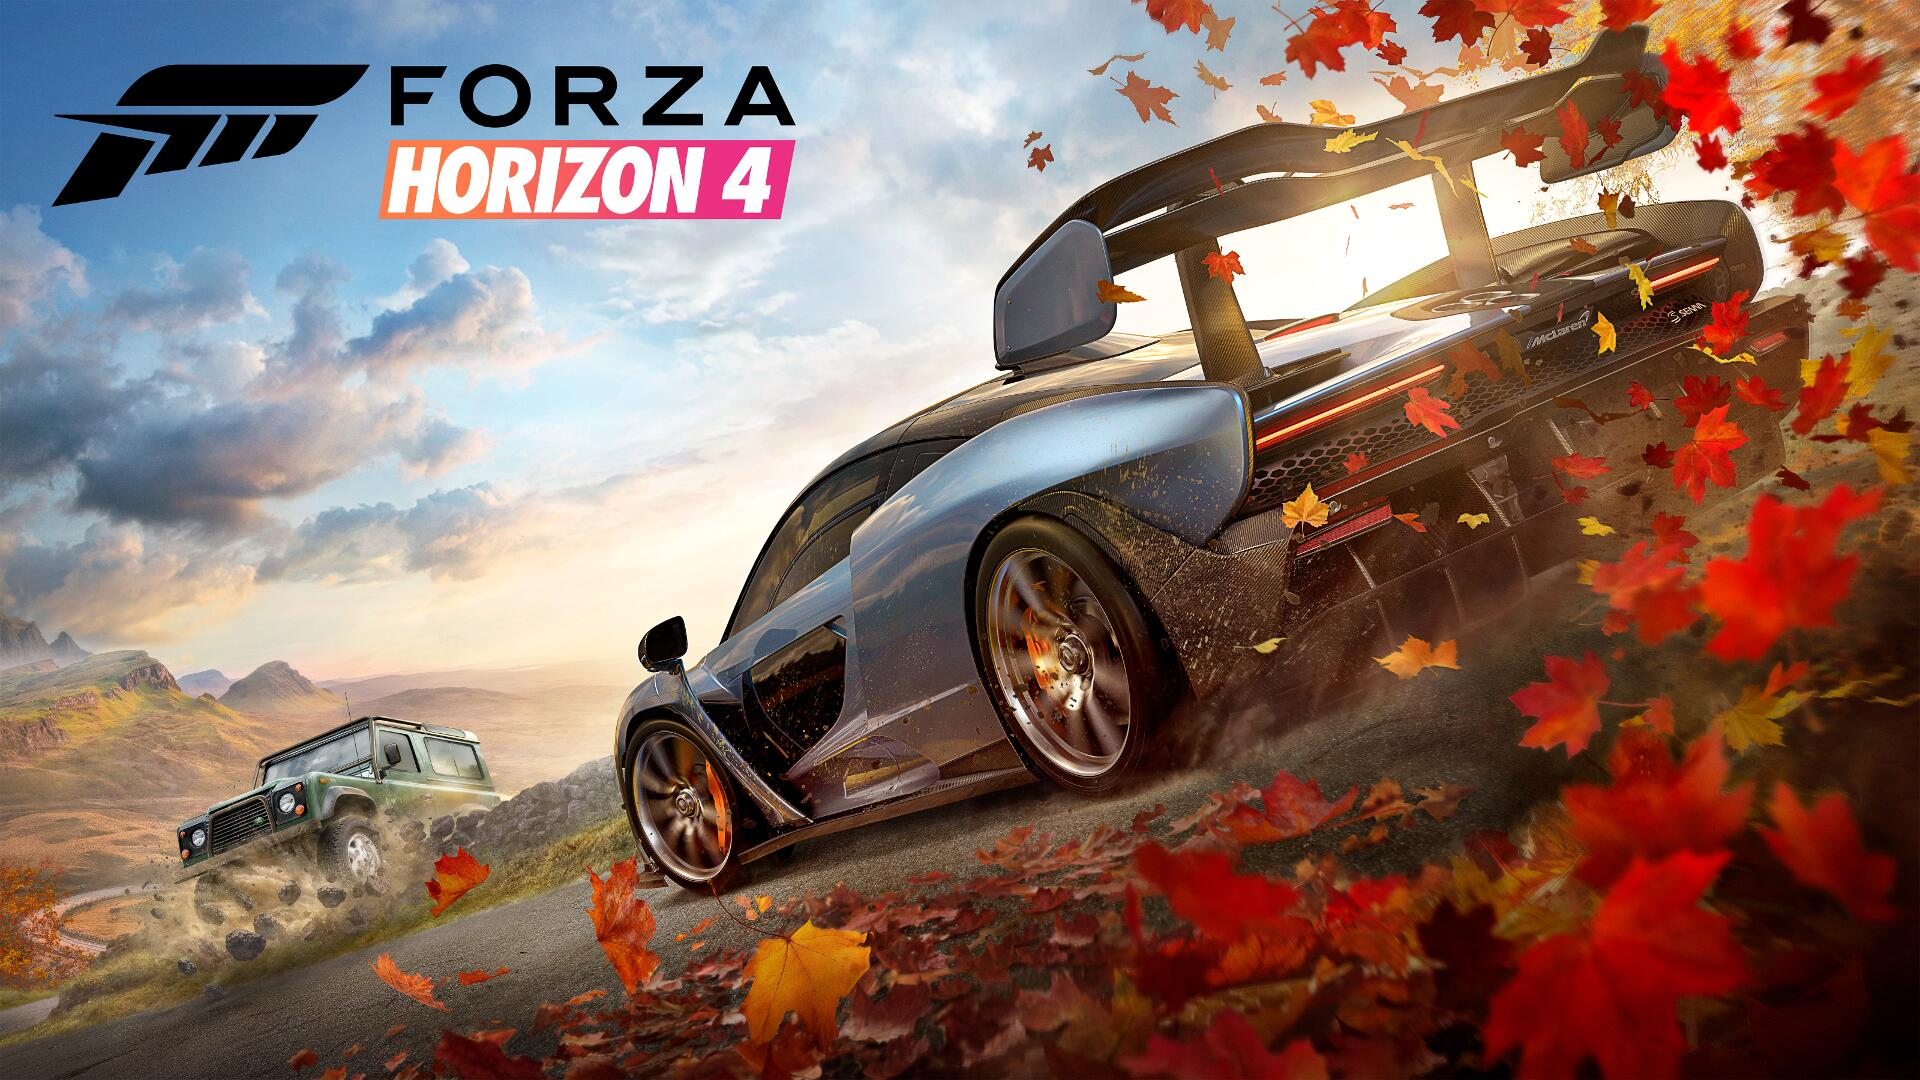 Image result for Forza horizon 4 1920x1080